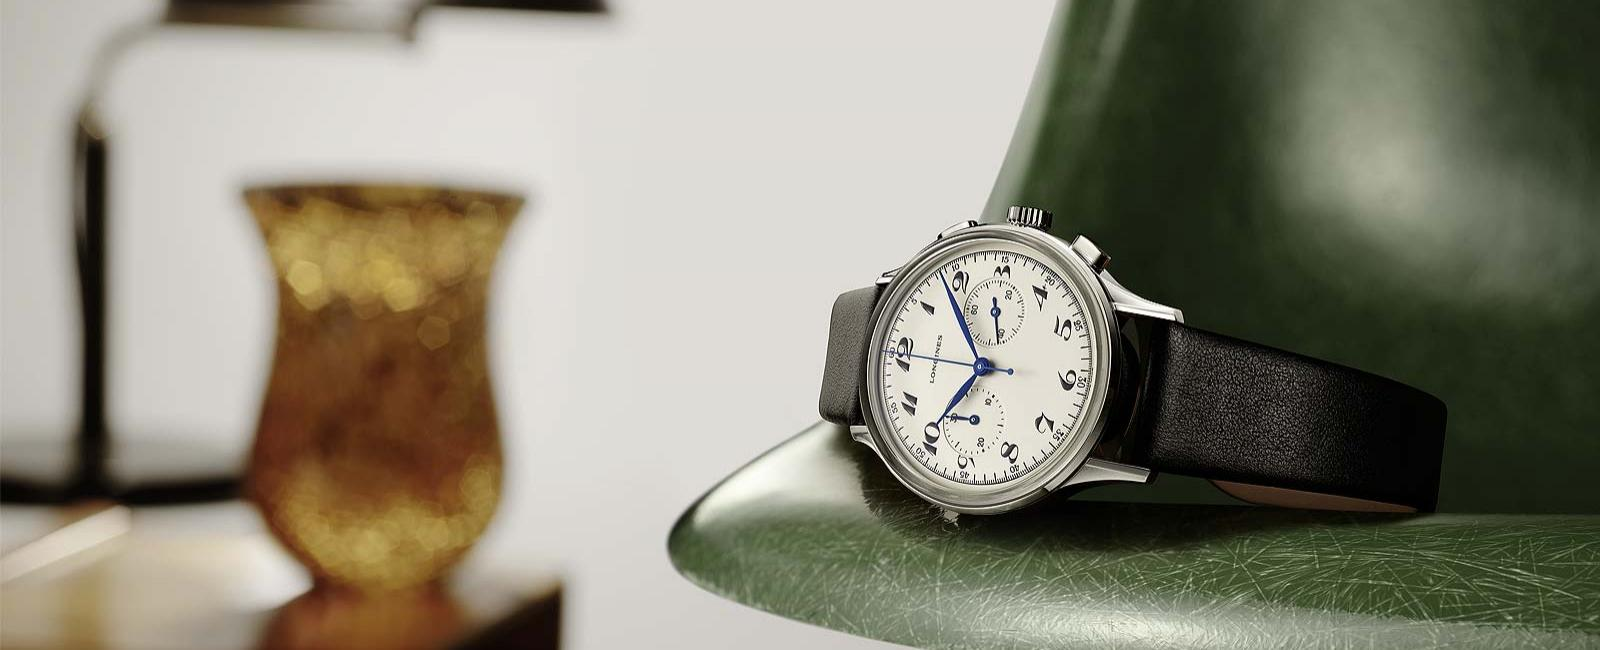 LONGINES BREATHES LIFE BACK INTO AN ELEGANT TIMEPIECE FROM THE LATE 1940S: THE LONGINES HERITAGE CLASSIC CHRONOGRAPH 1946